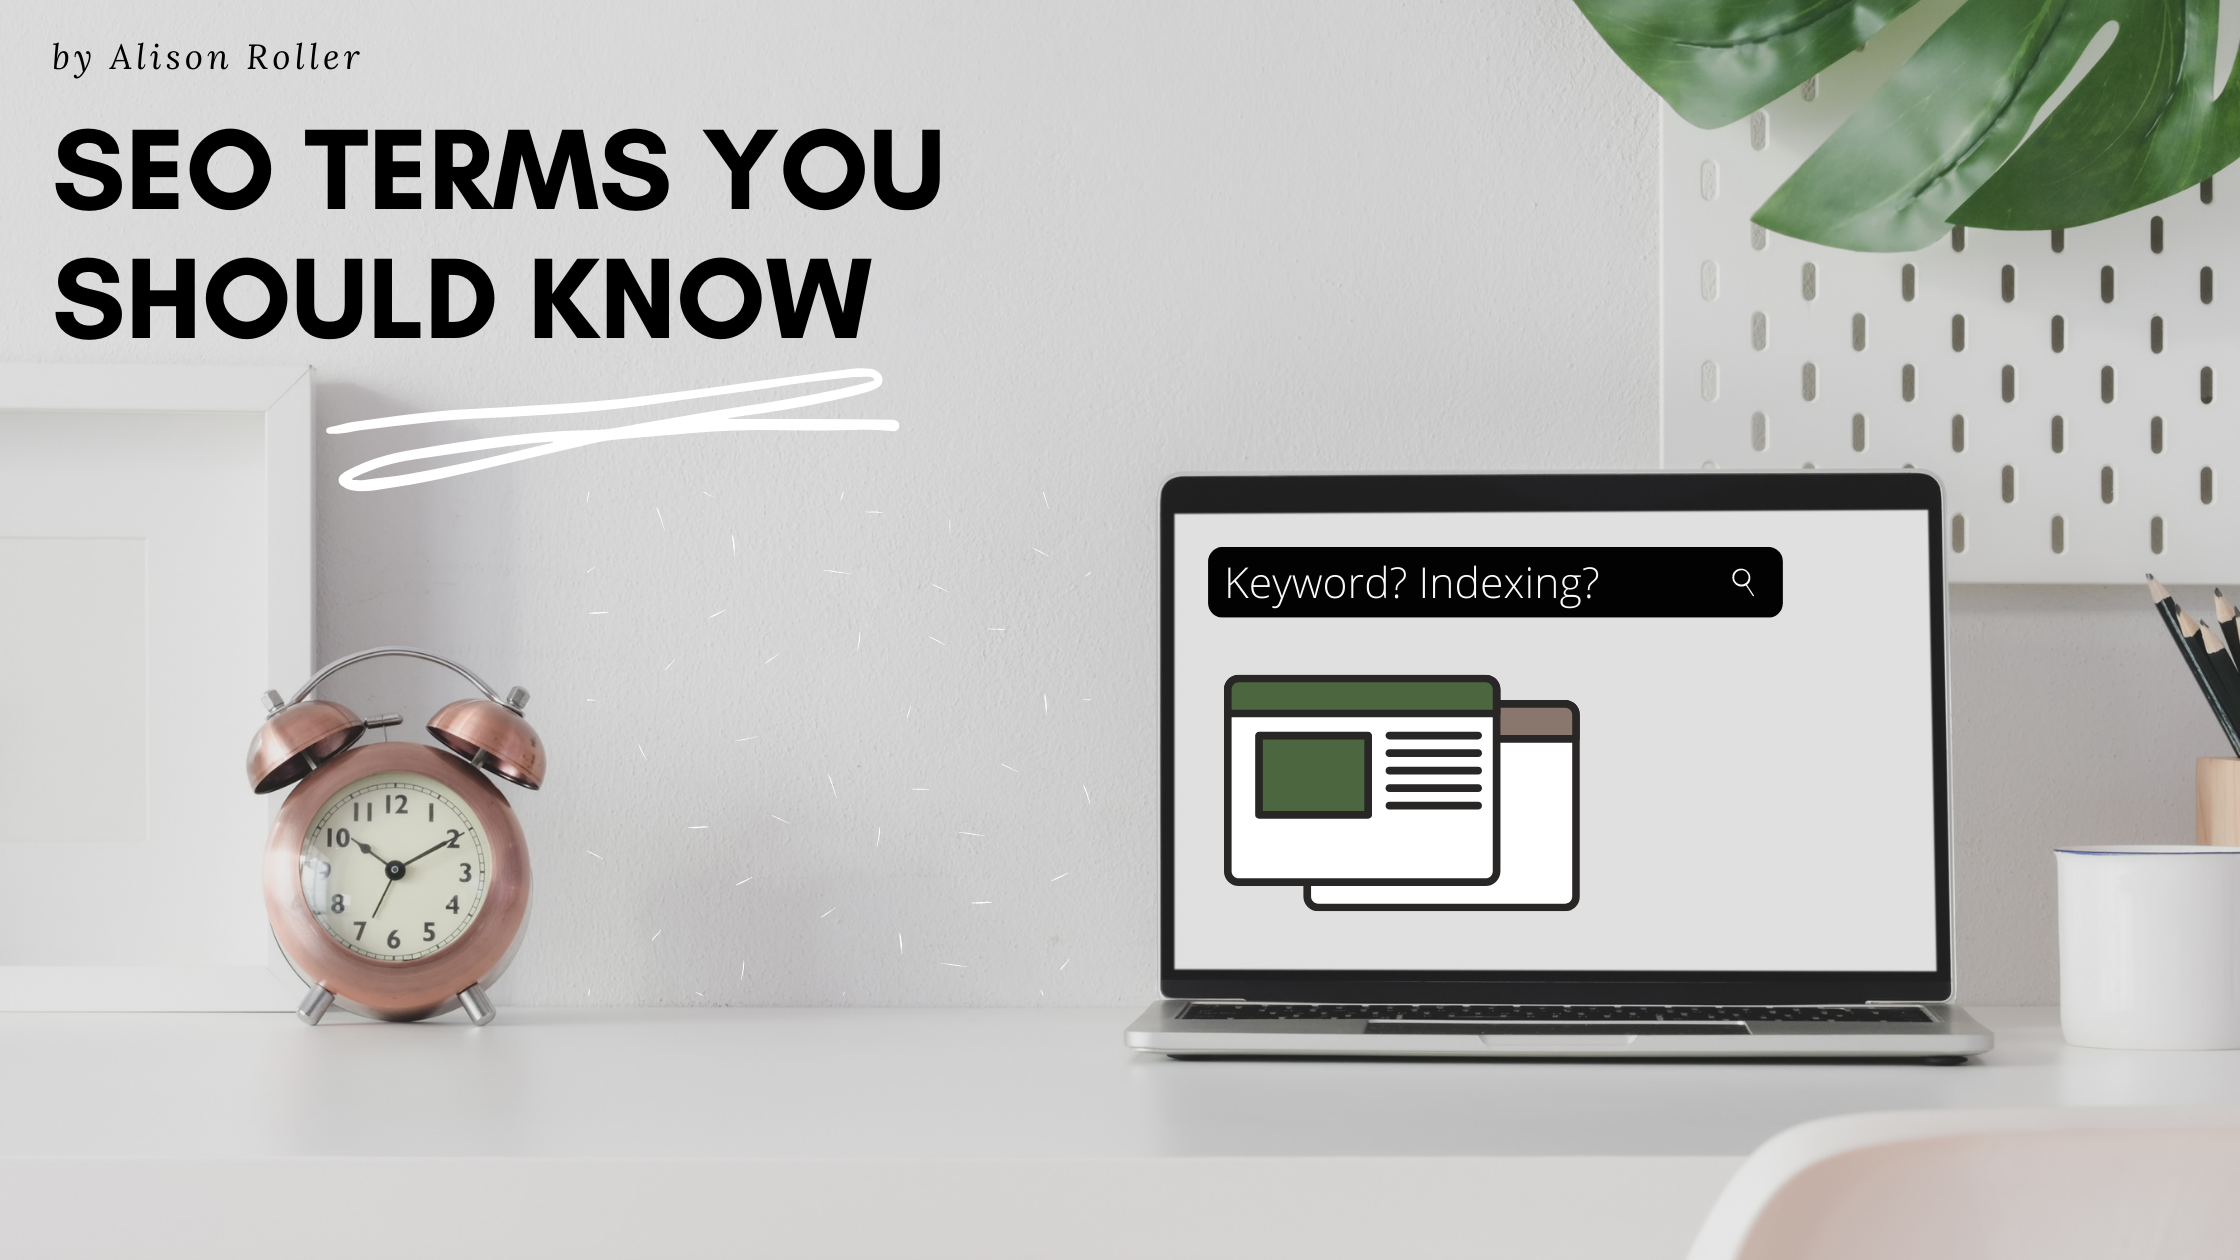 SEO Terms You Should Know graphic